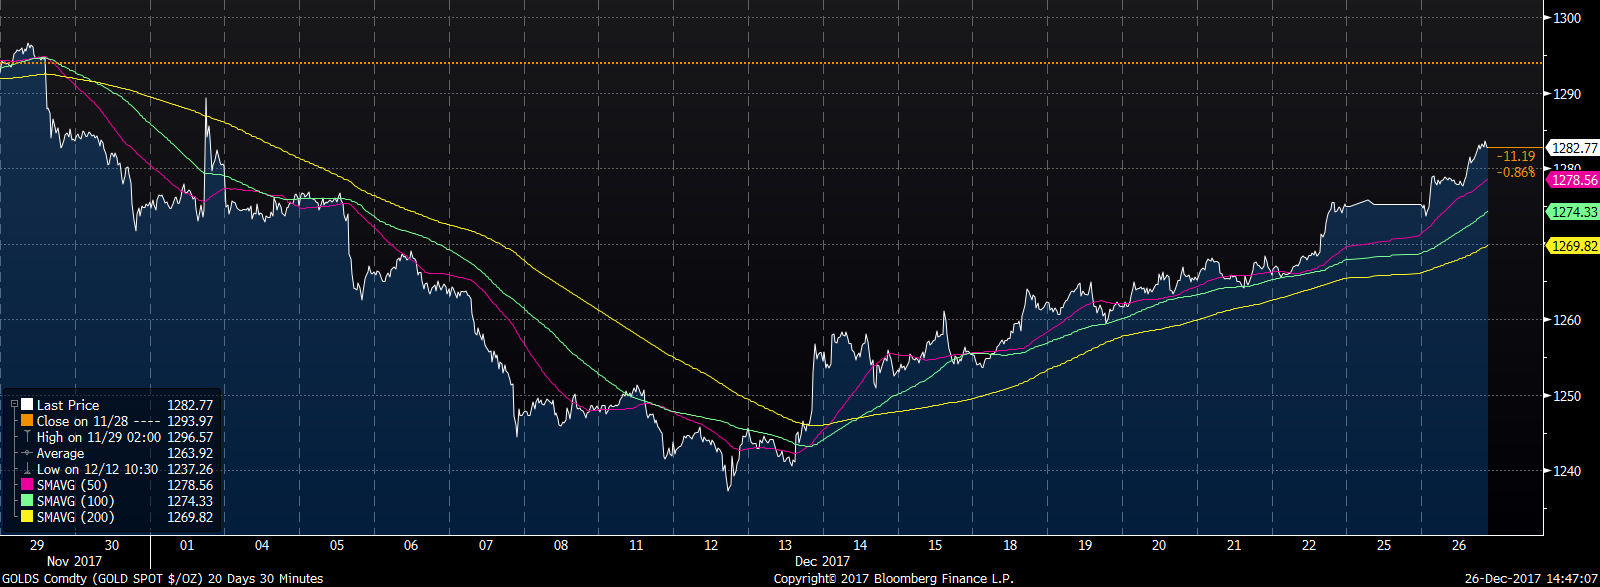 The gold trade is back. Source: Bloomberg